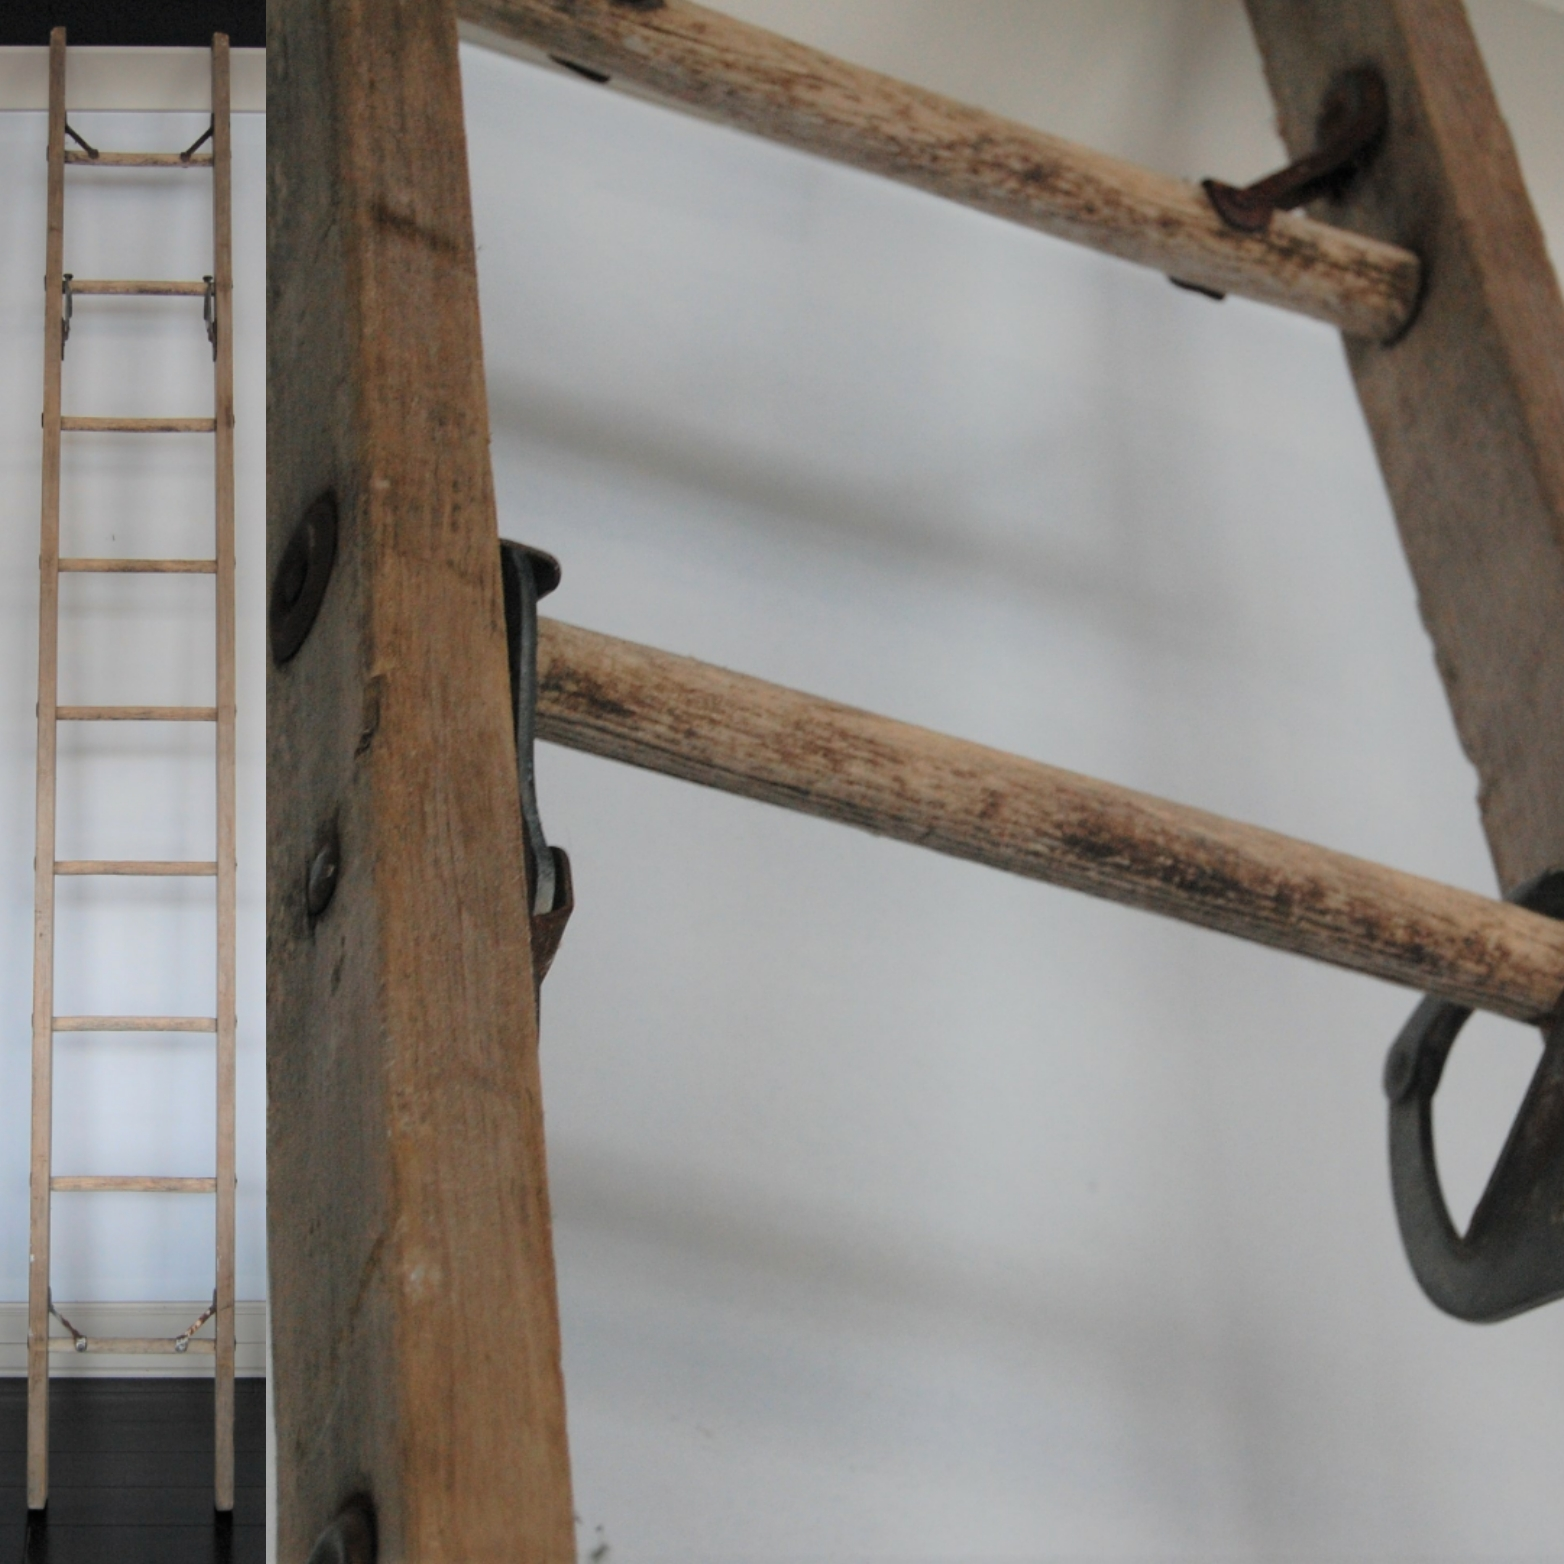 Old 10' Orchard Ladder from Marinus Home Seattle